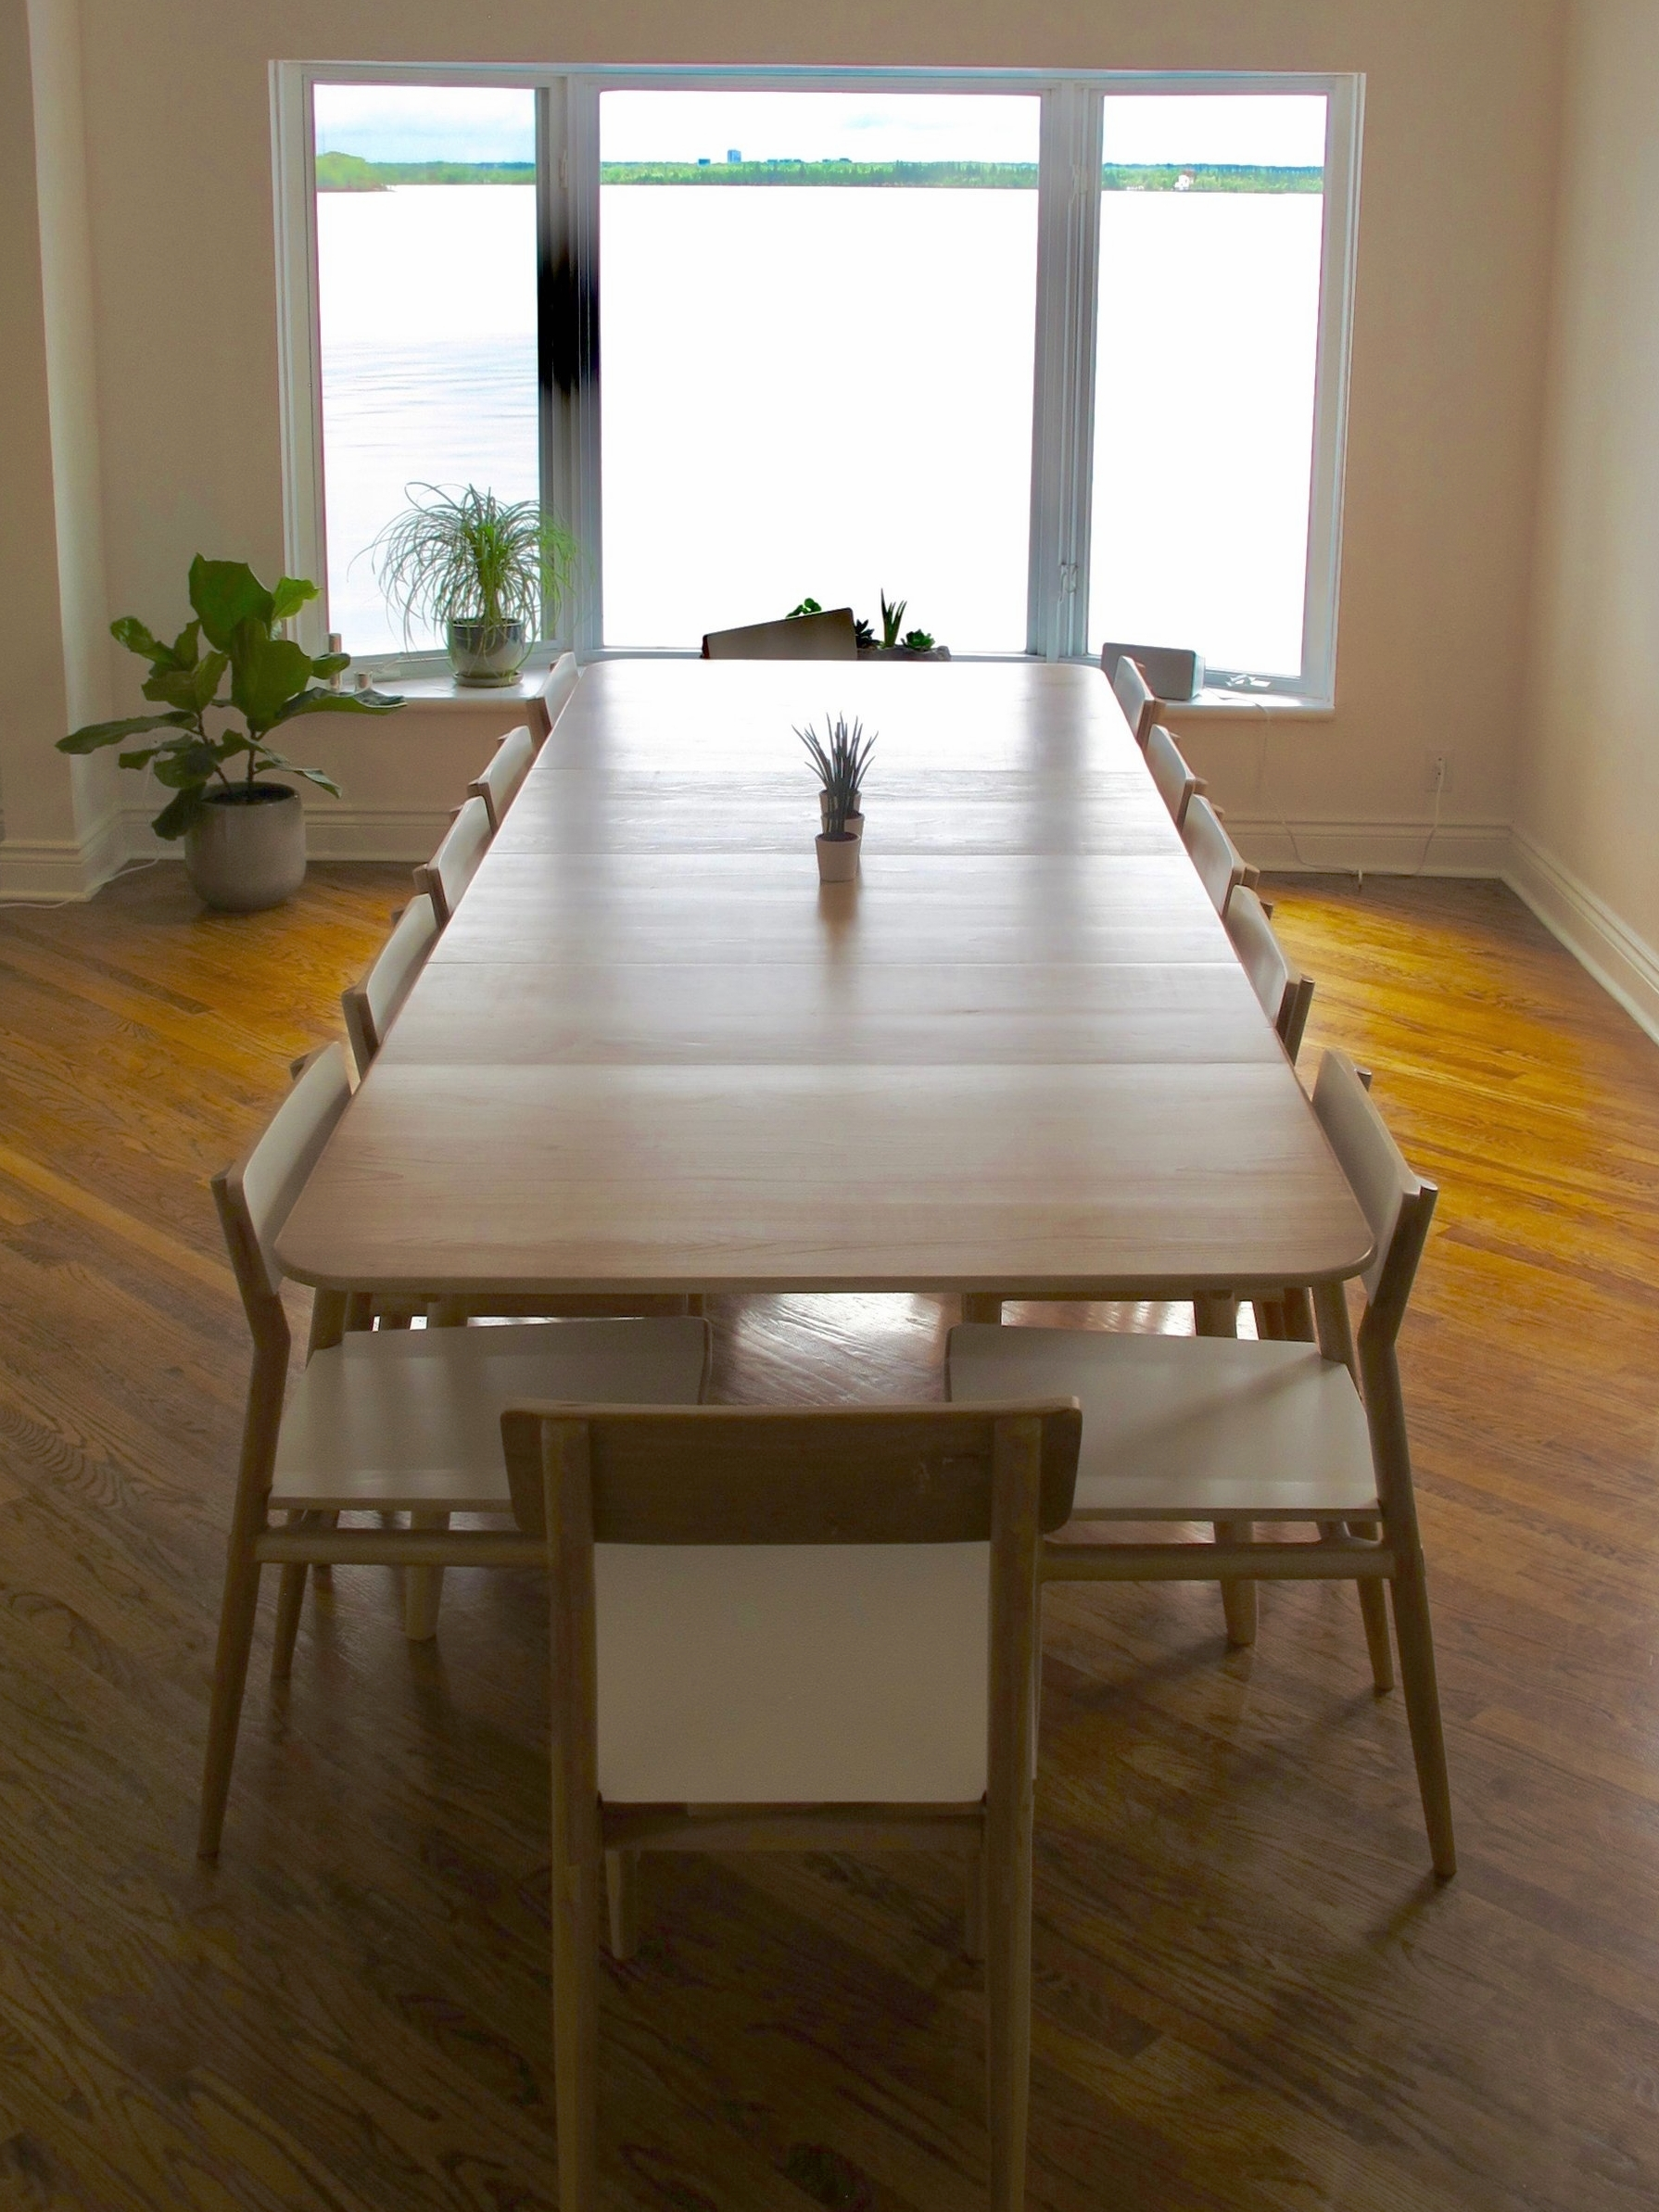 "Lars Extesion Table in Beech (fully extended to 124"")"